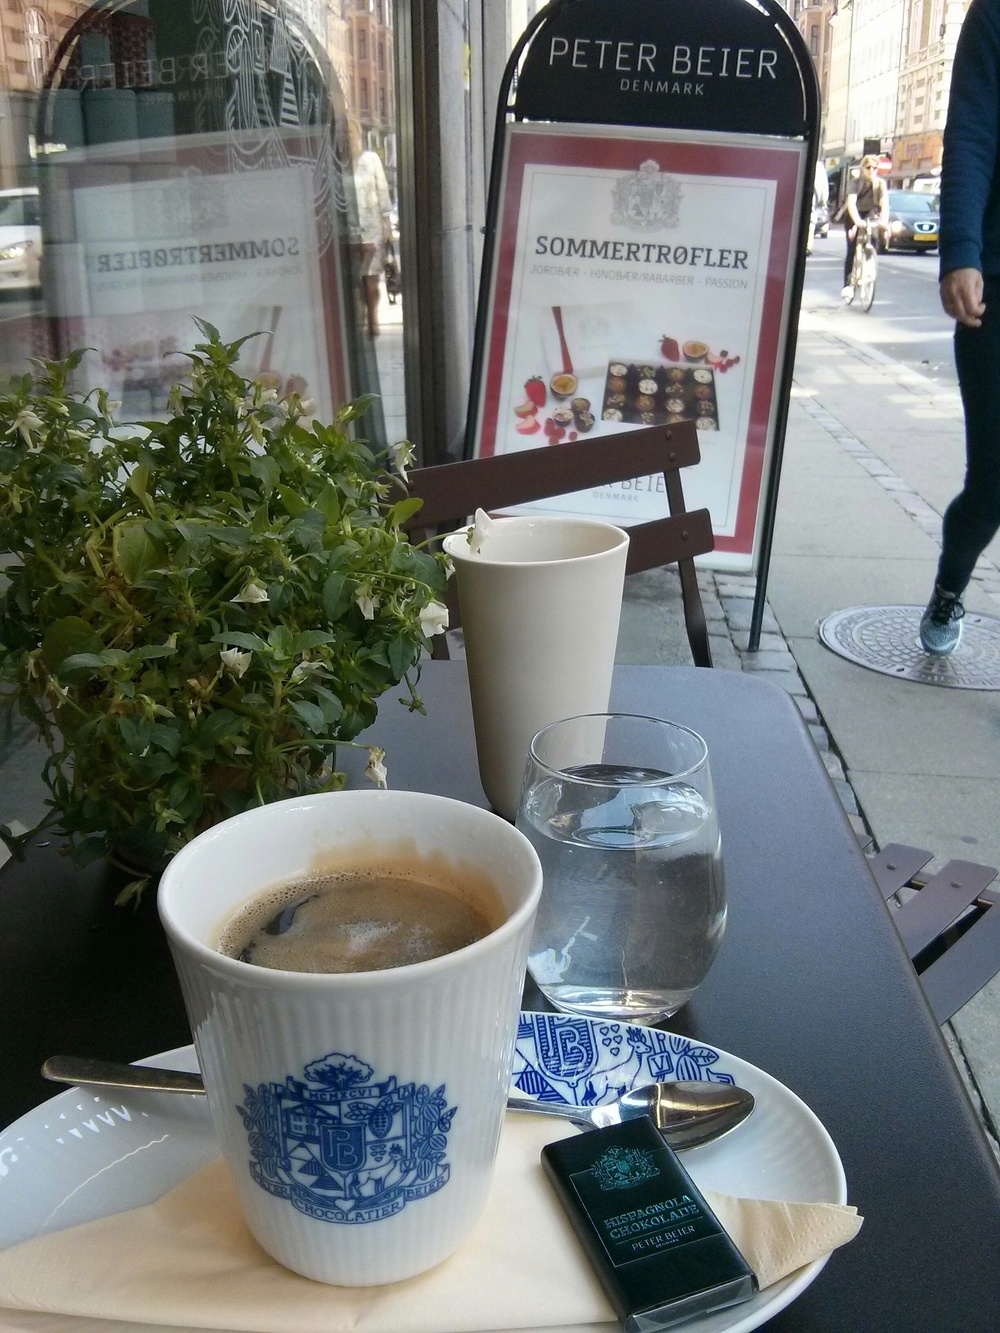 coffee, store kongensgade ( http://www.pbchokolade.dk/gb/ ) and watching the interesting crow walking by.